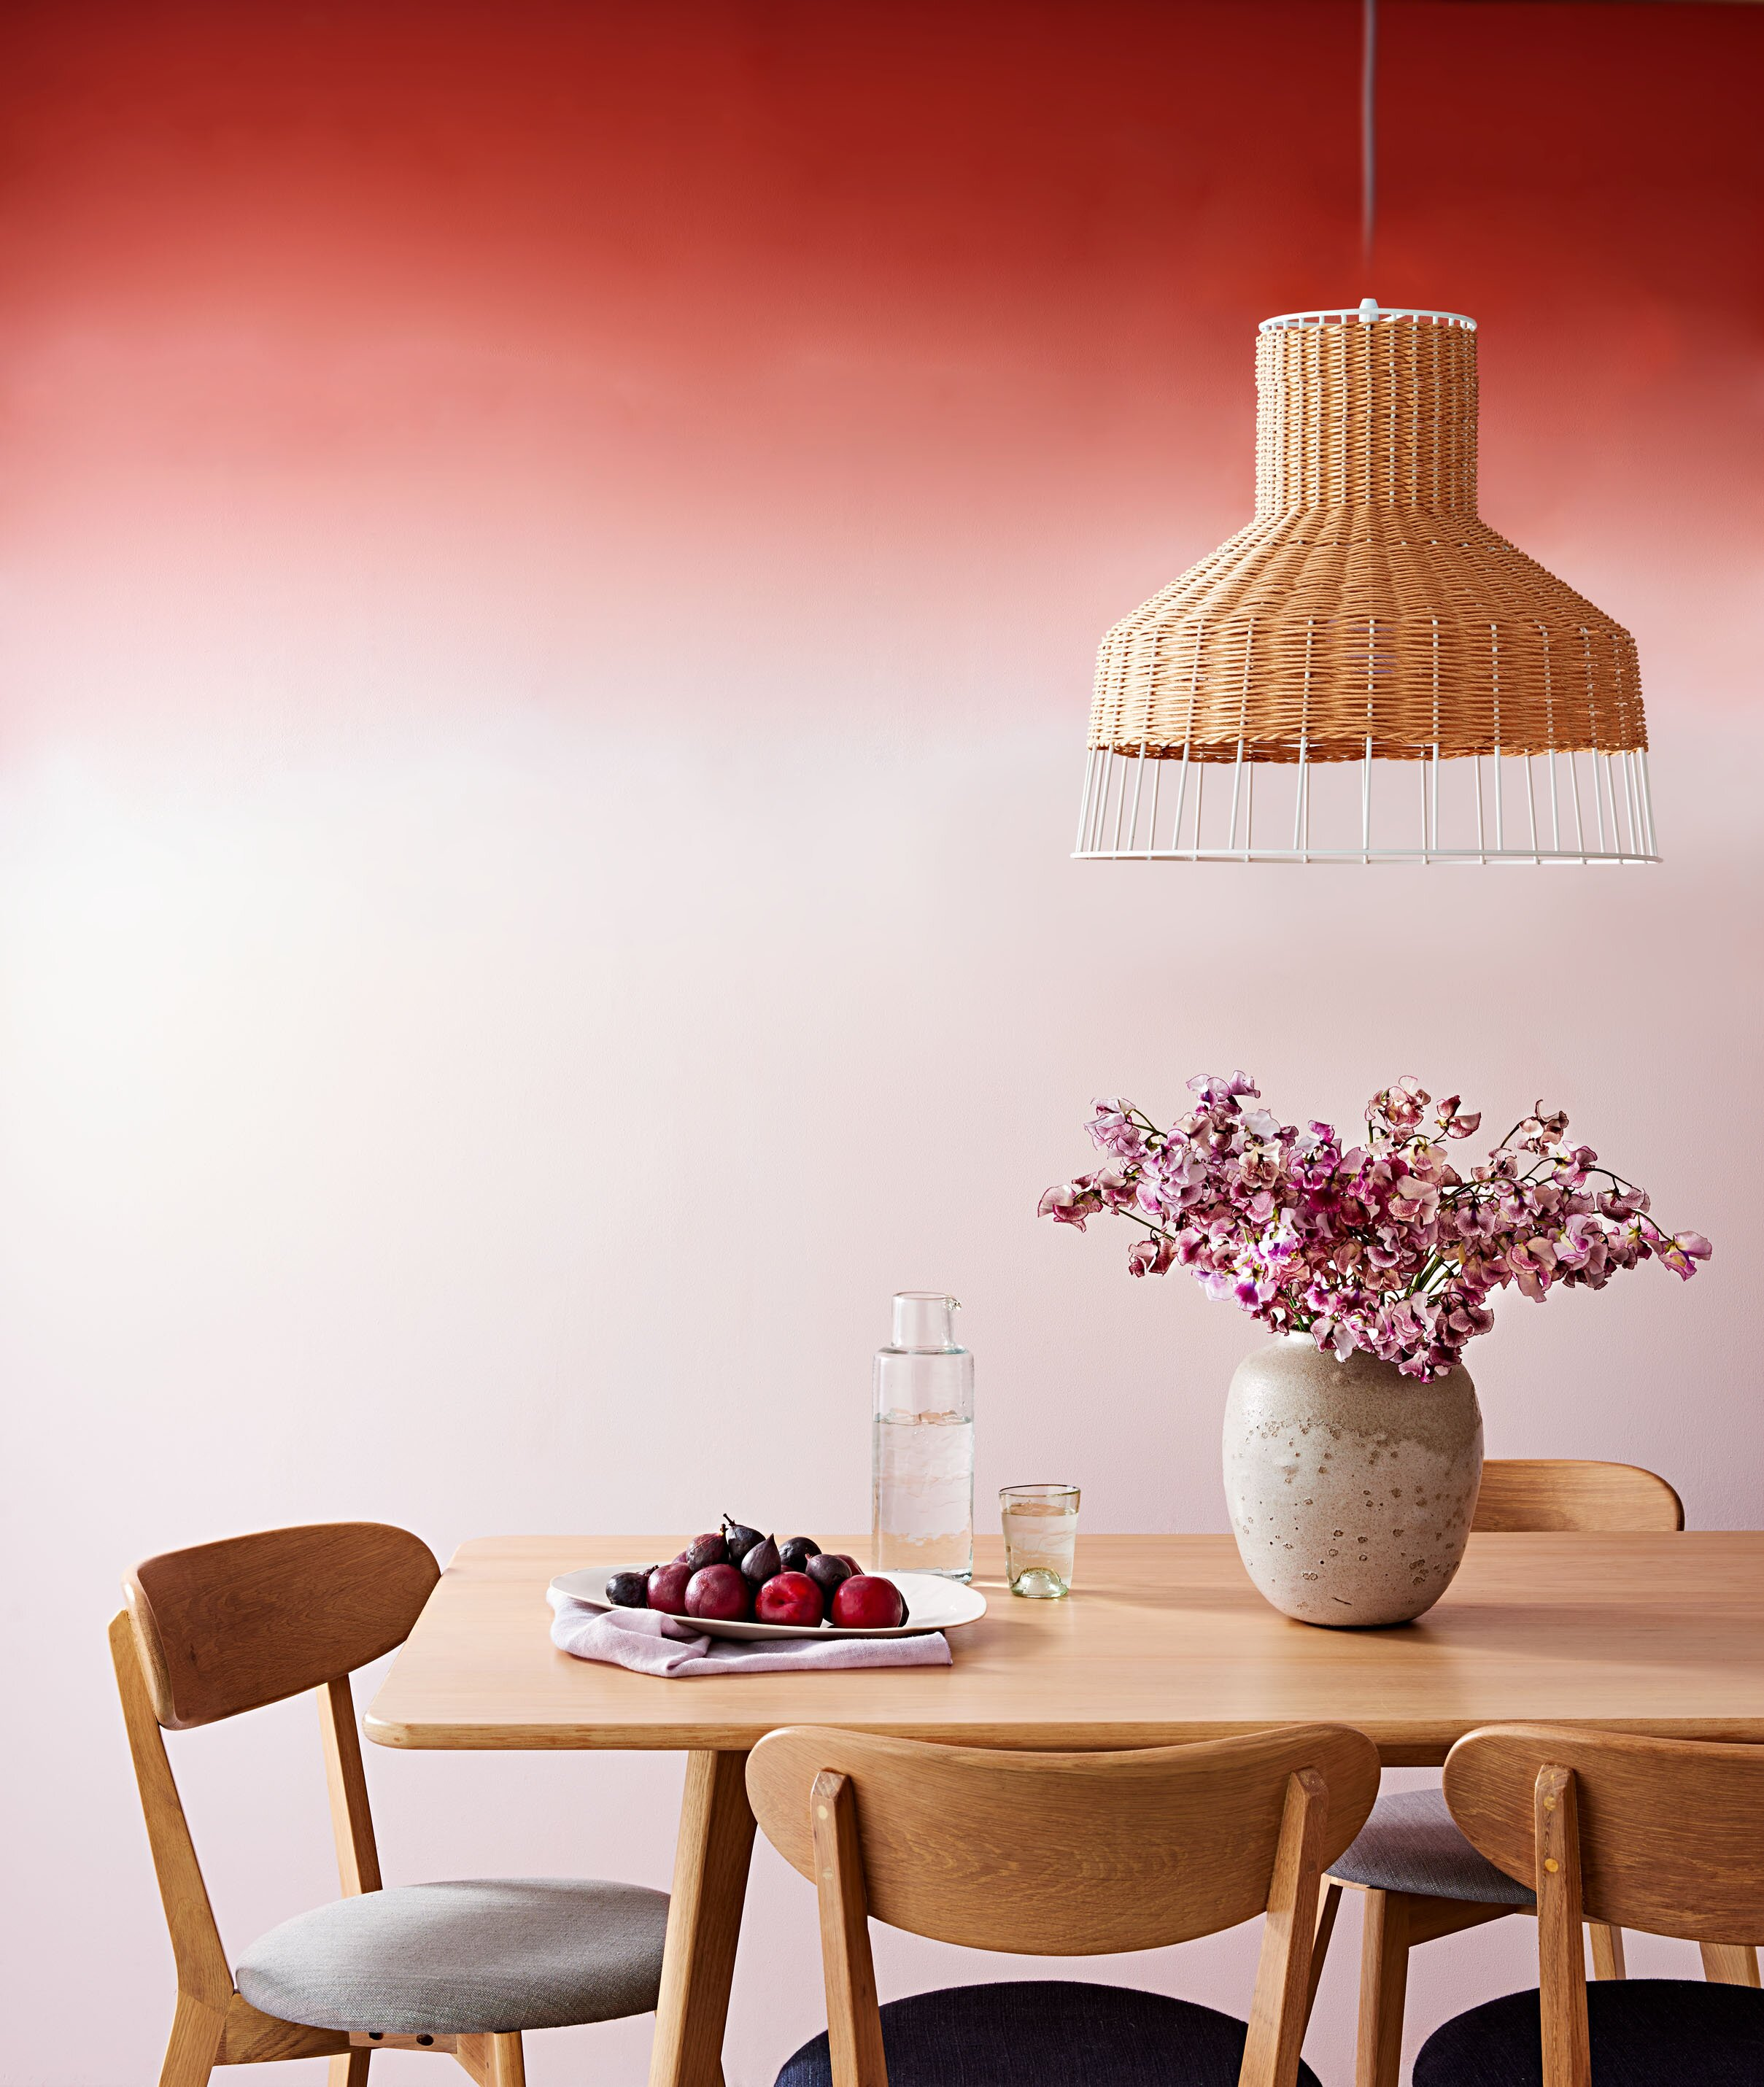 10 Amazing Ways to Decorate Your Walls with Paint | Martha ...